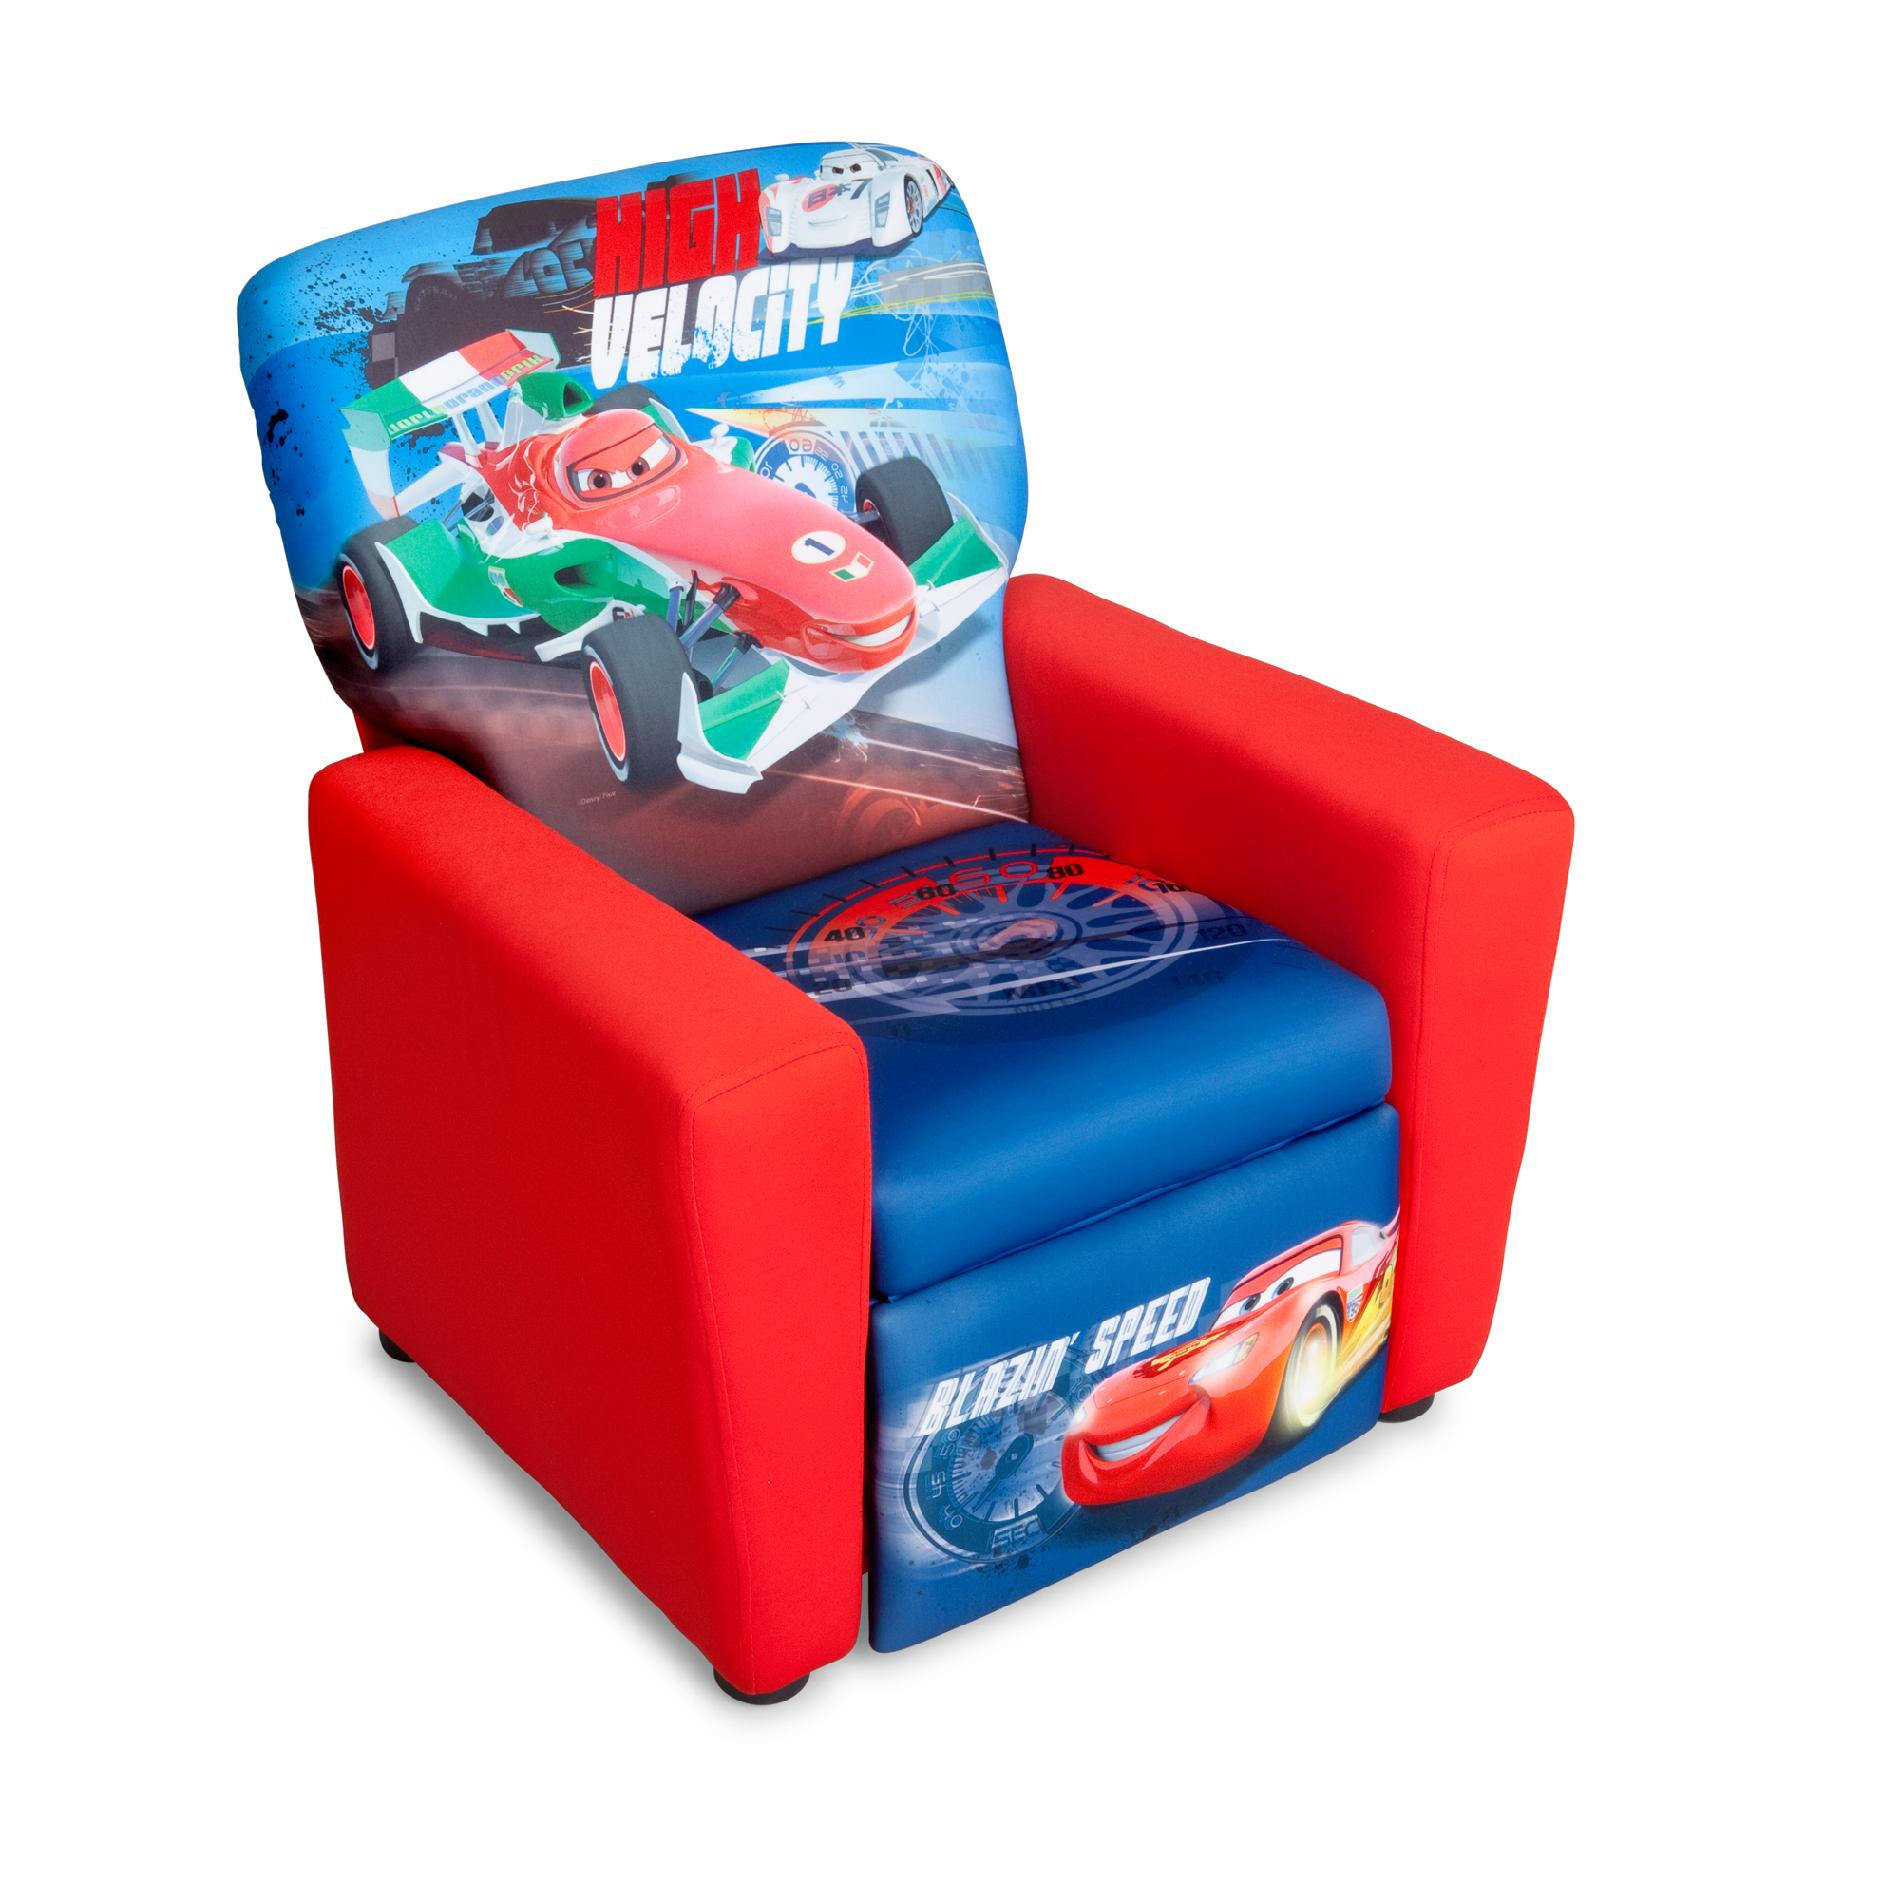 kids table and chair set kmart pride power lift repair disney cars furniture - totally kids, bedrooms bedroom ideas